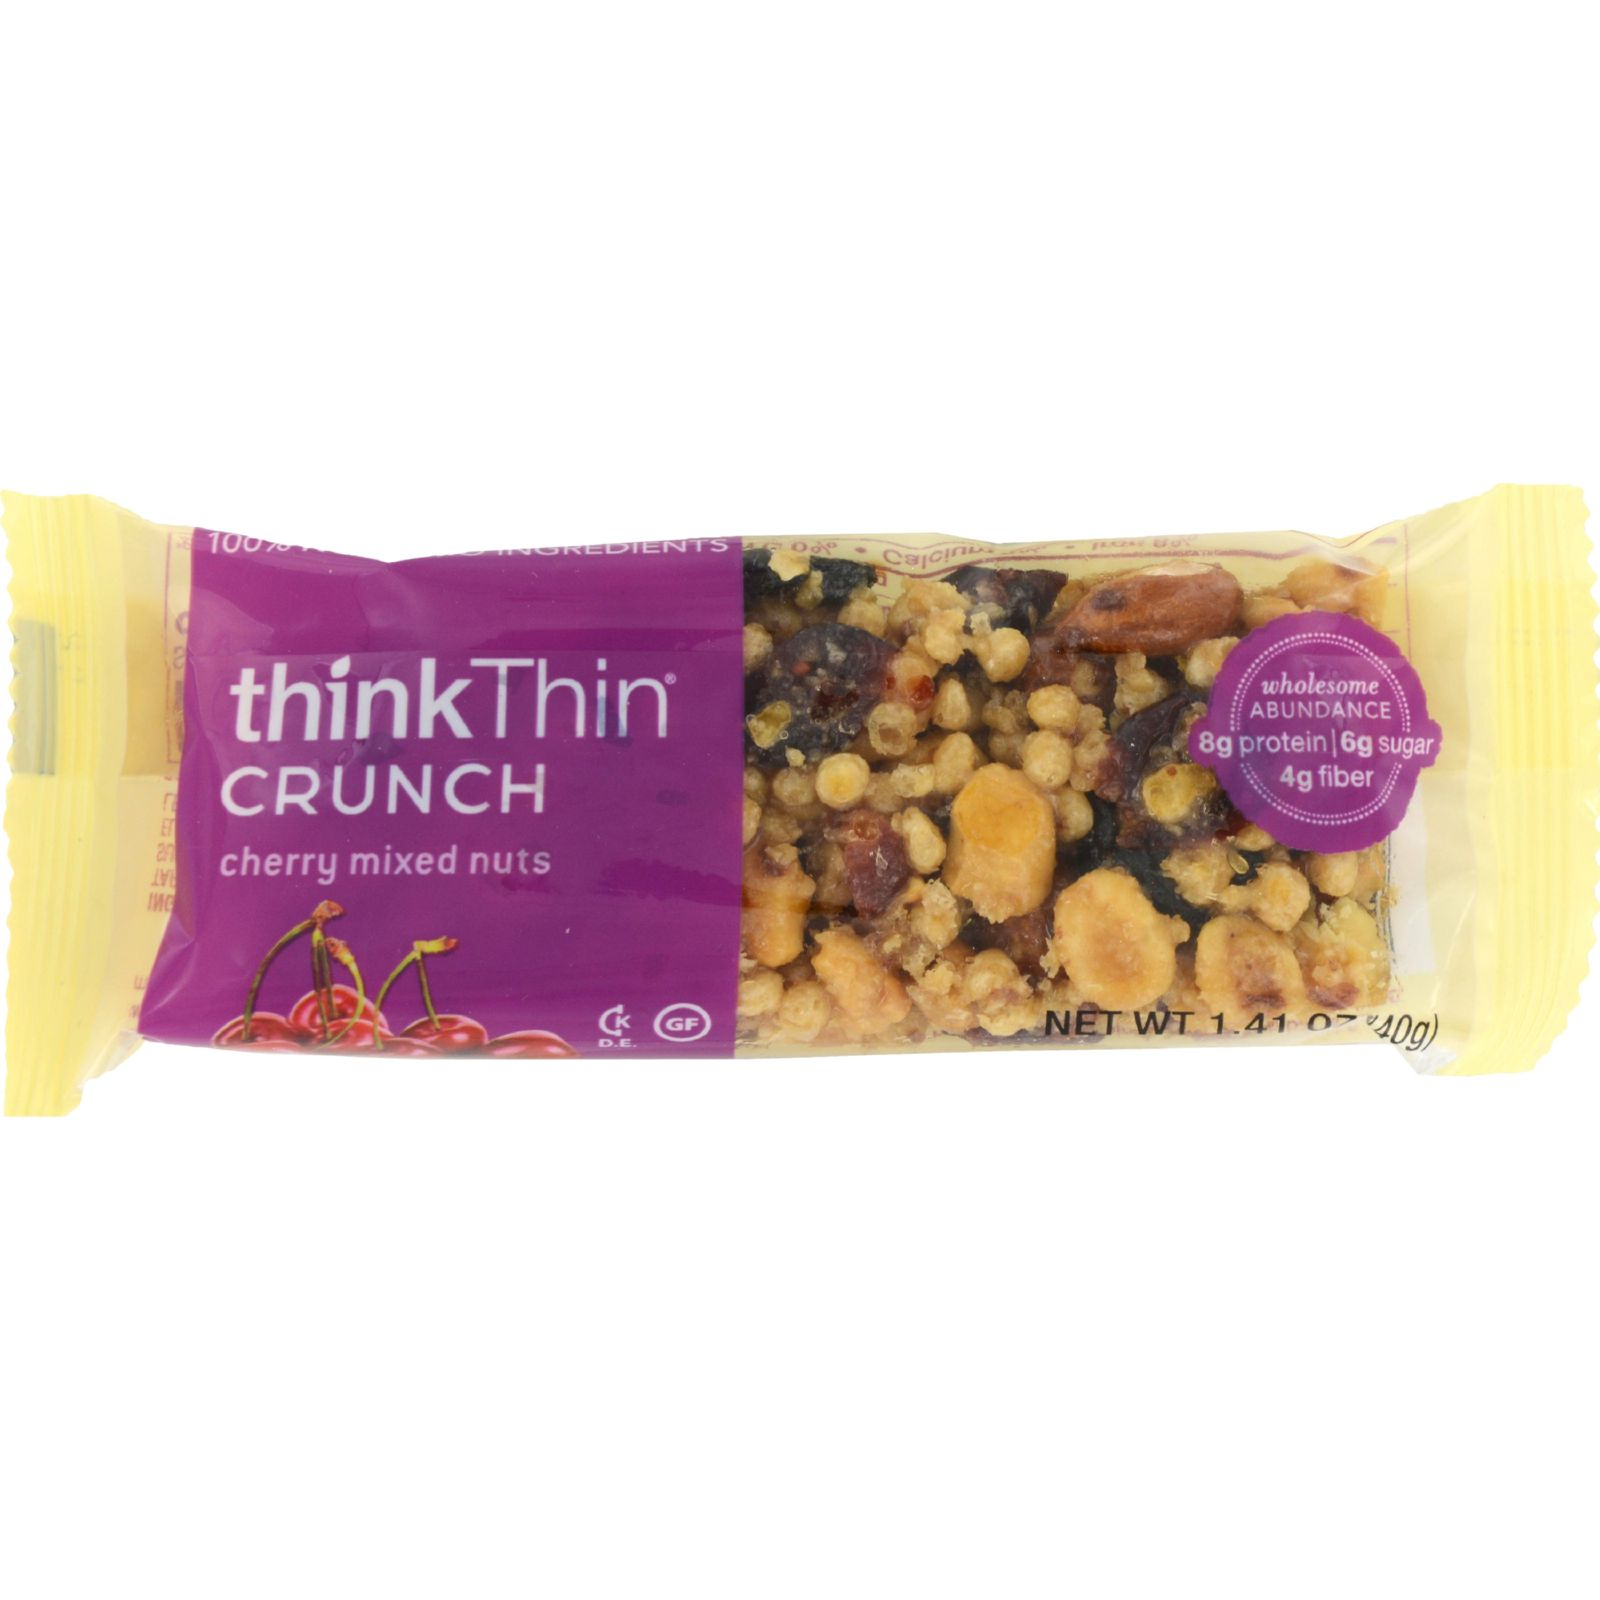 Think Products thinkThin Crunch Bar - Crunch Cherry Mixed Nuts - 1.41 oz - Case of 10